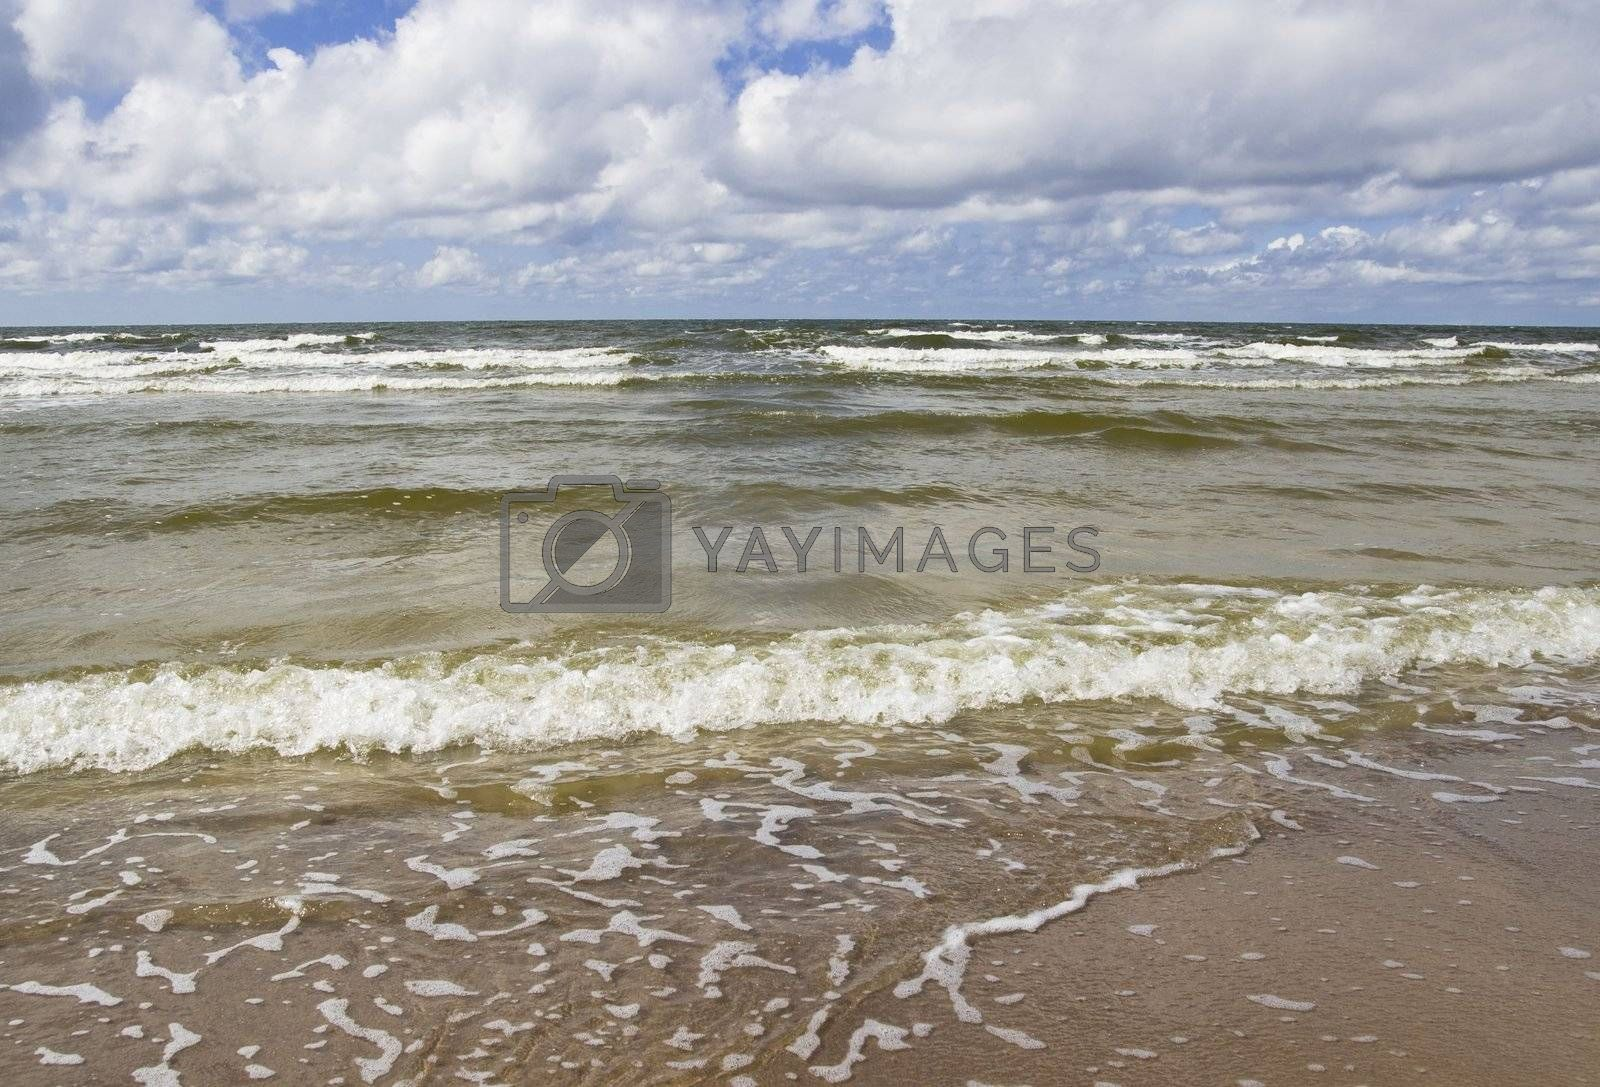 Baltic sea foam with place for text oradvertisement.